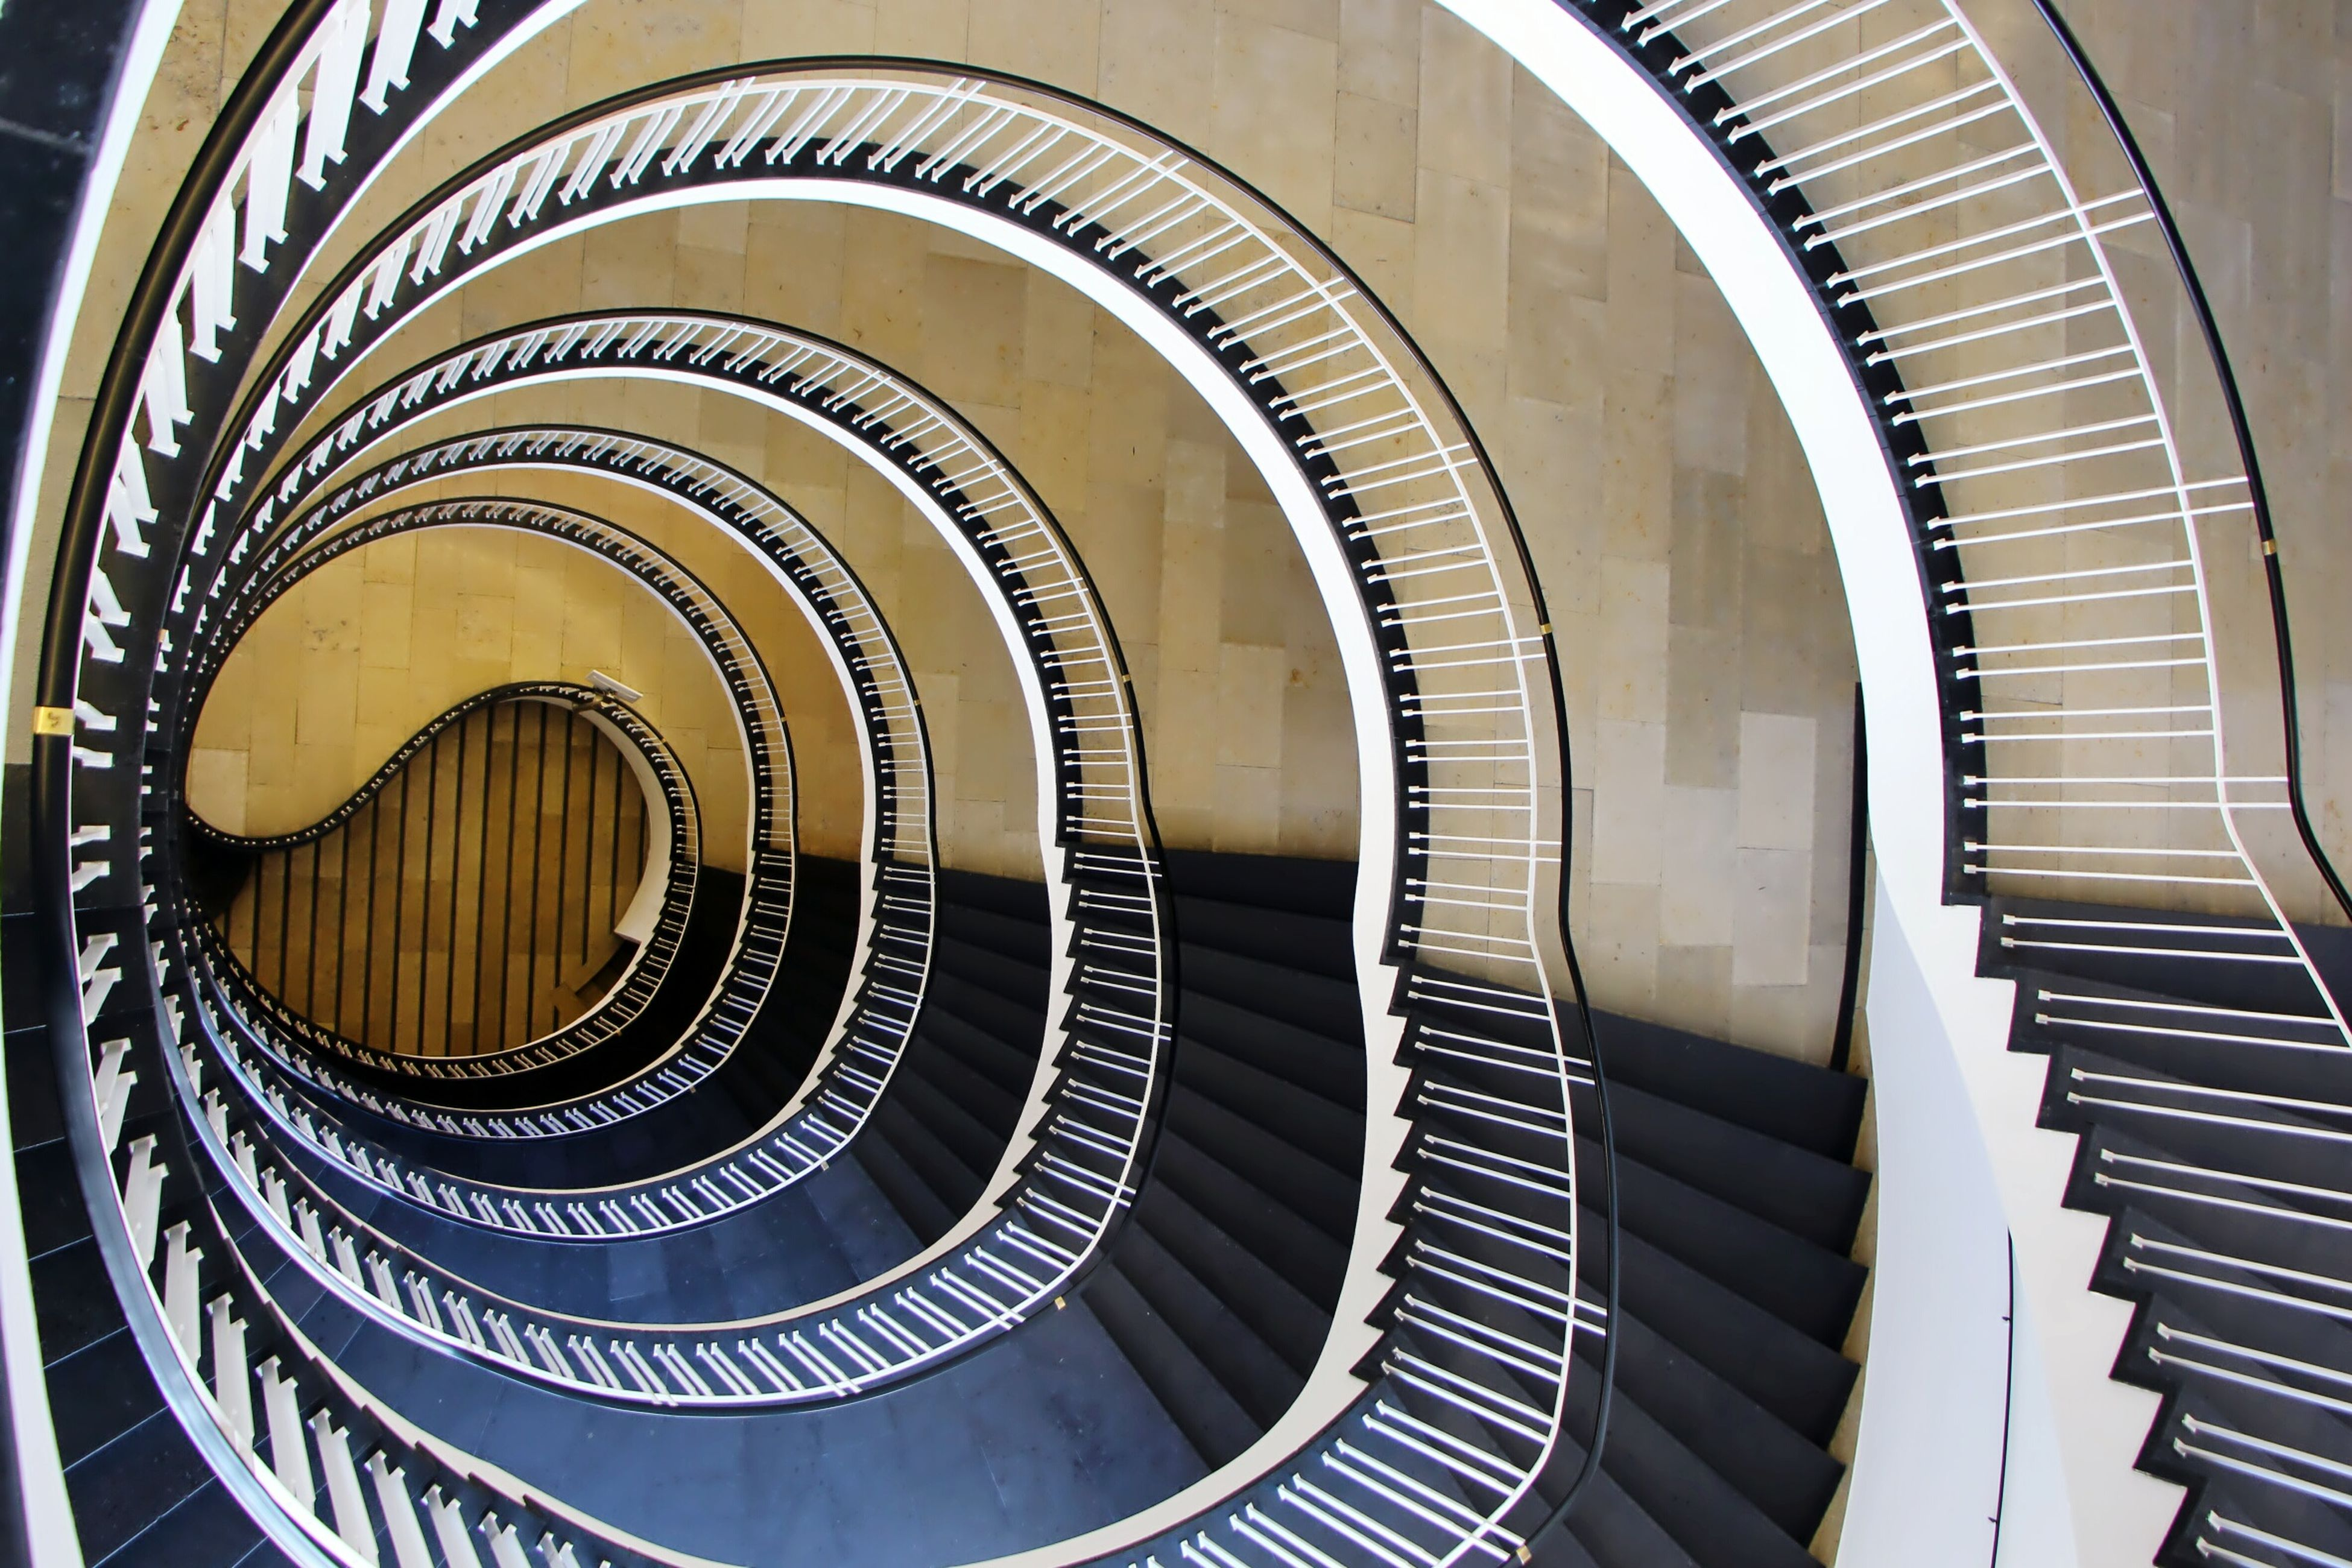 steps, steps and staircases, spiral, railing, spiral staircase, staircase, repetition, built structure, high angle view, indoors, architecture, low angle view, design, building story, curve, diminishing perspective, concentric, architectural feature, no people, modern, geometric shape